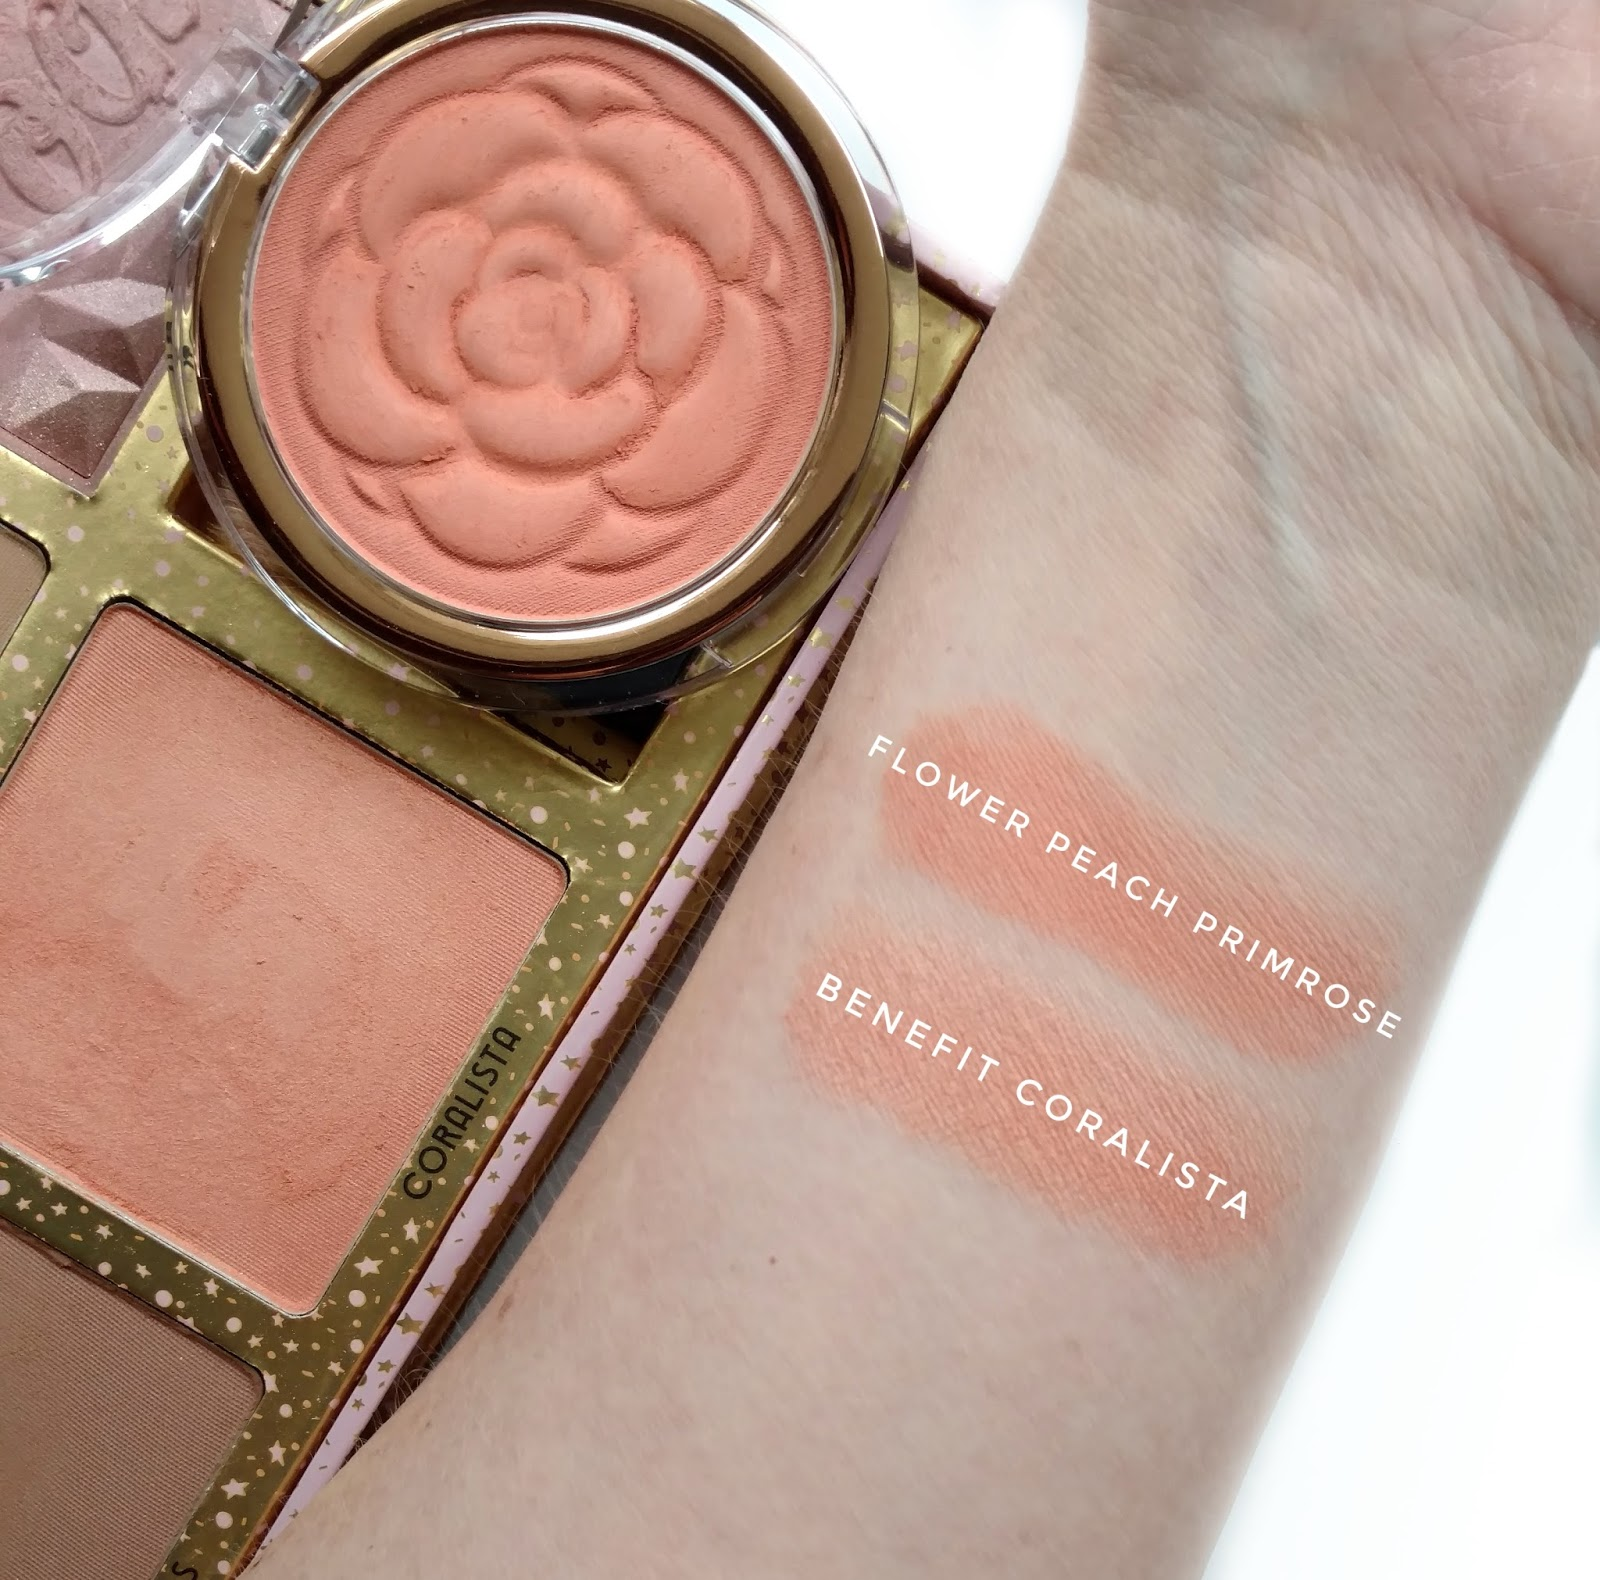 Flower beauty flower pots blush review swatches dupes peach primrose is very similar to benefit coralista but even more pigmented izmirmasajfo